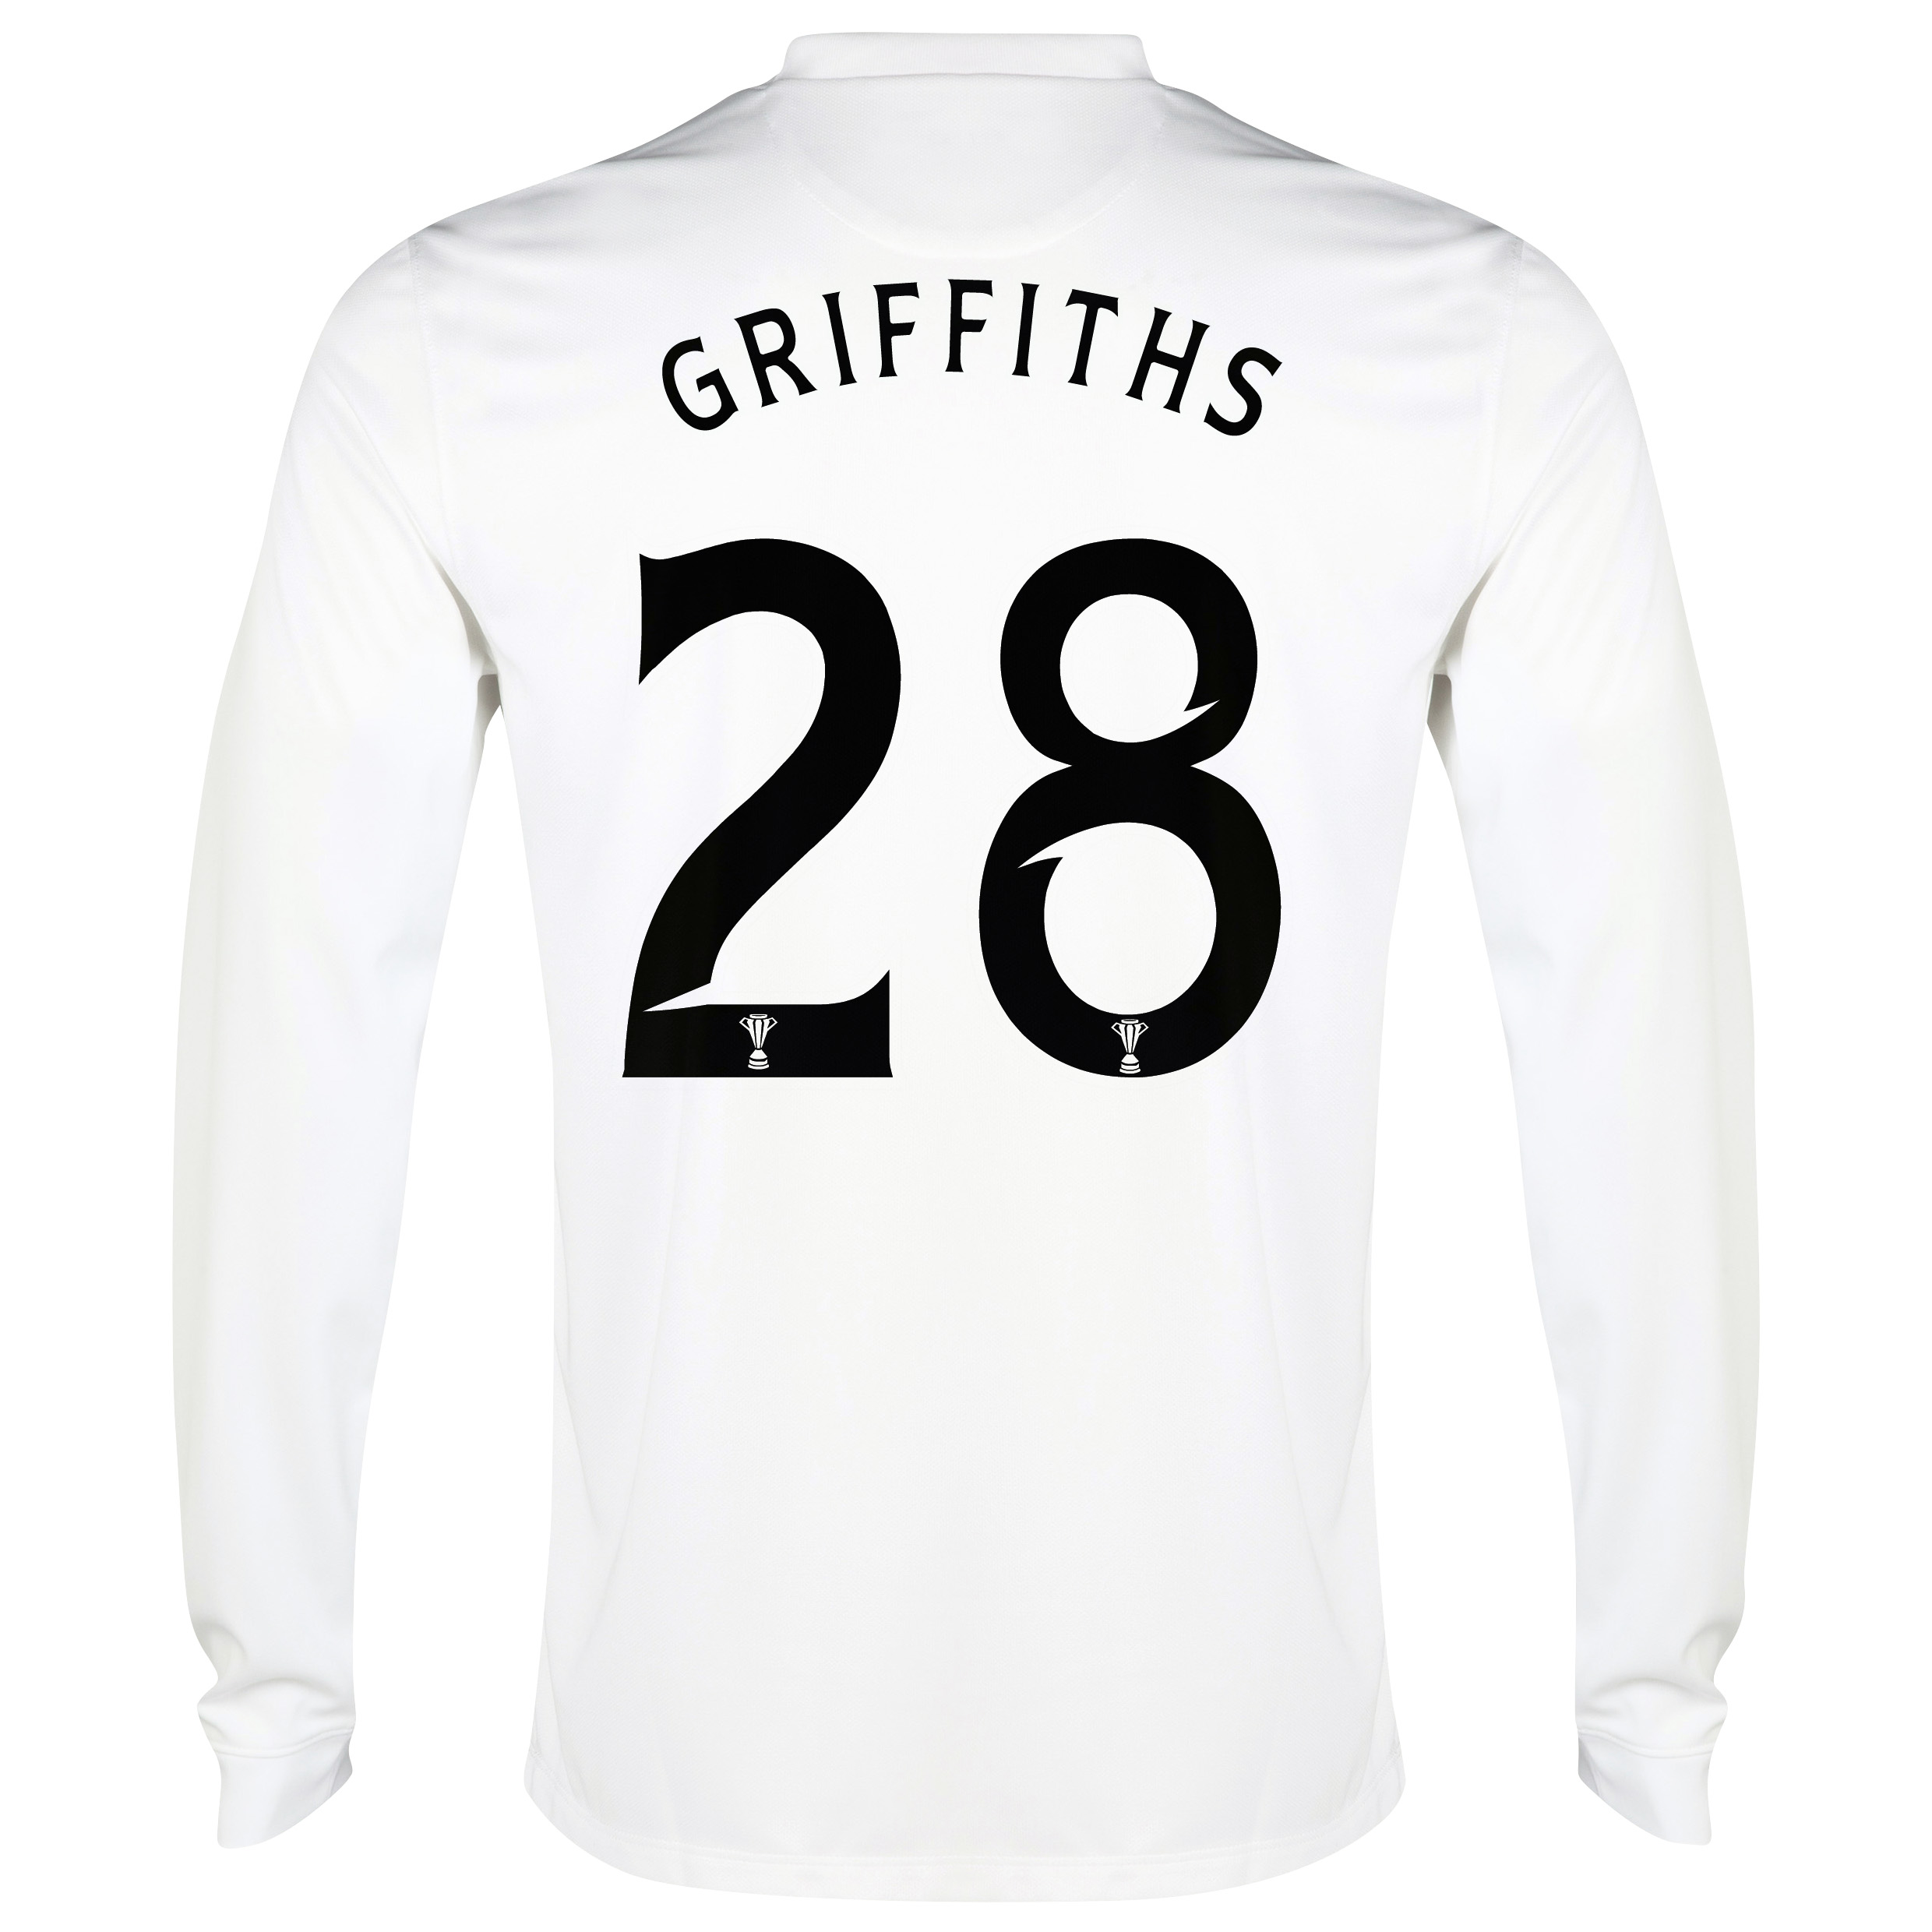 Celtic 3rd Shirt 2014/15 - Long Sleeved - Unsponsored White with Griffiths 28 printing